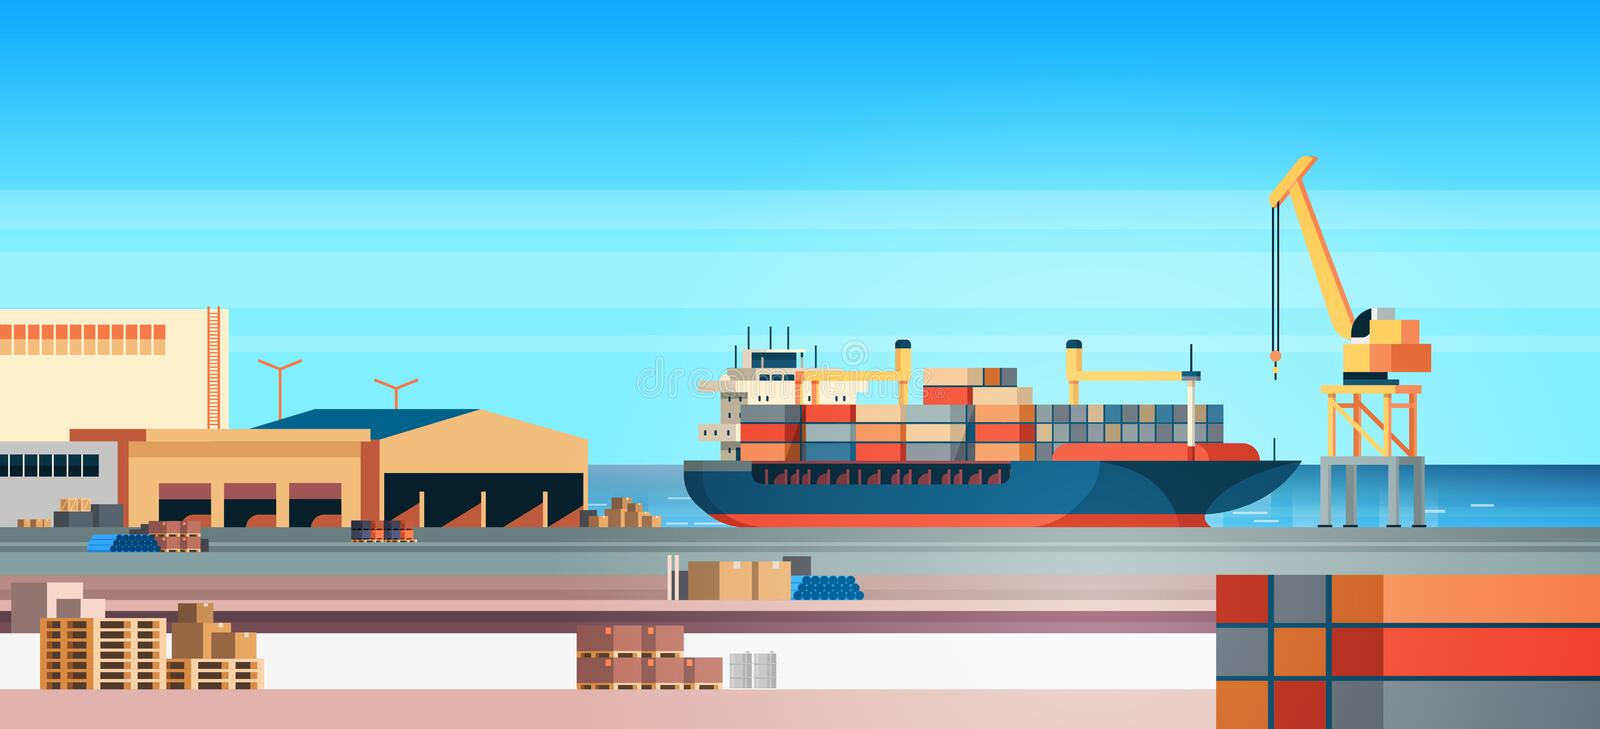 Industrial sea port cargo logistics container import export freight ship crane water delivery transportation concept royalty free illustration